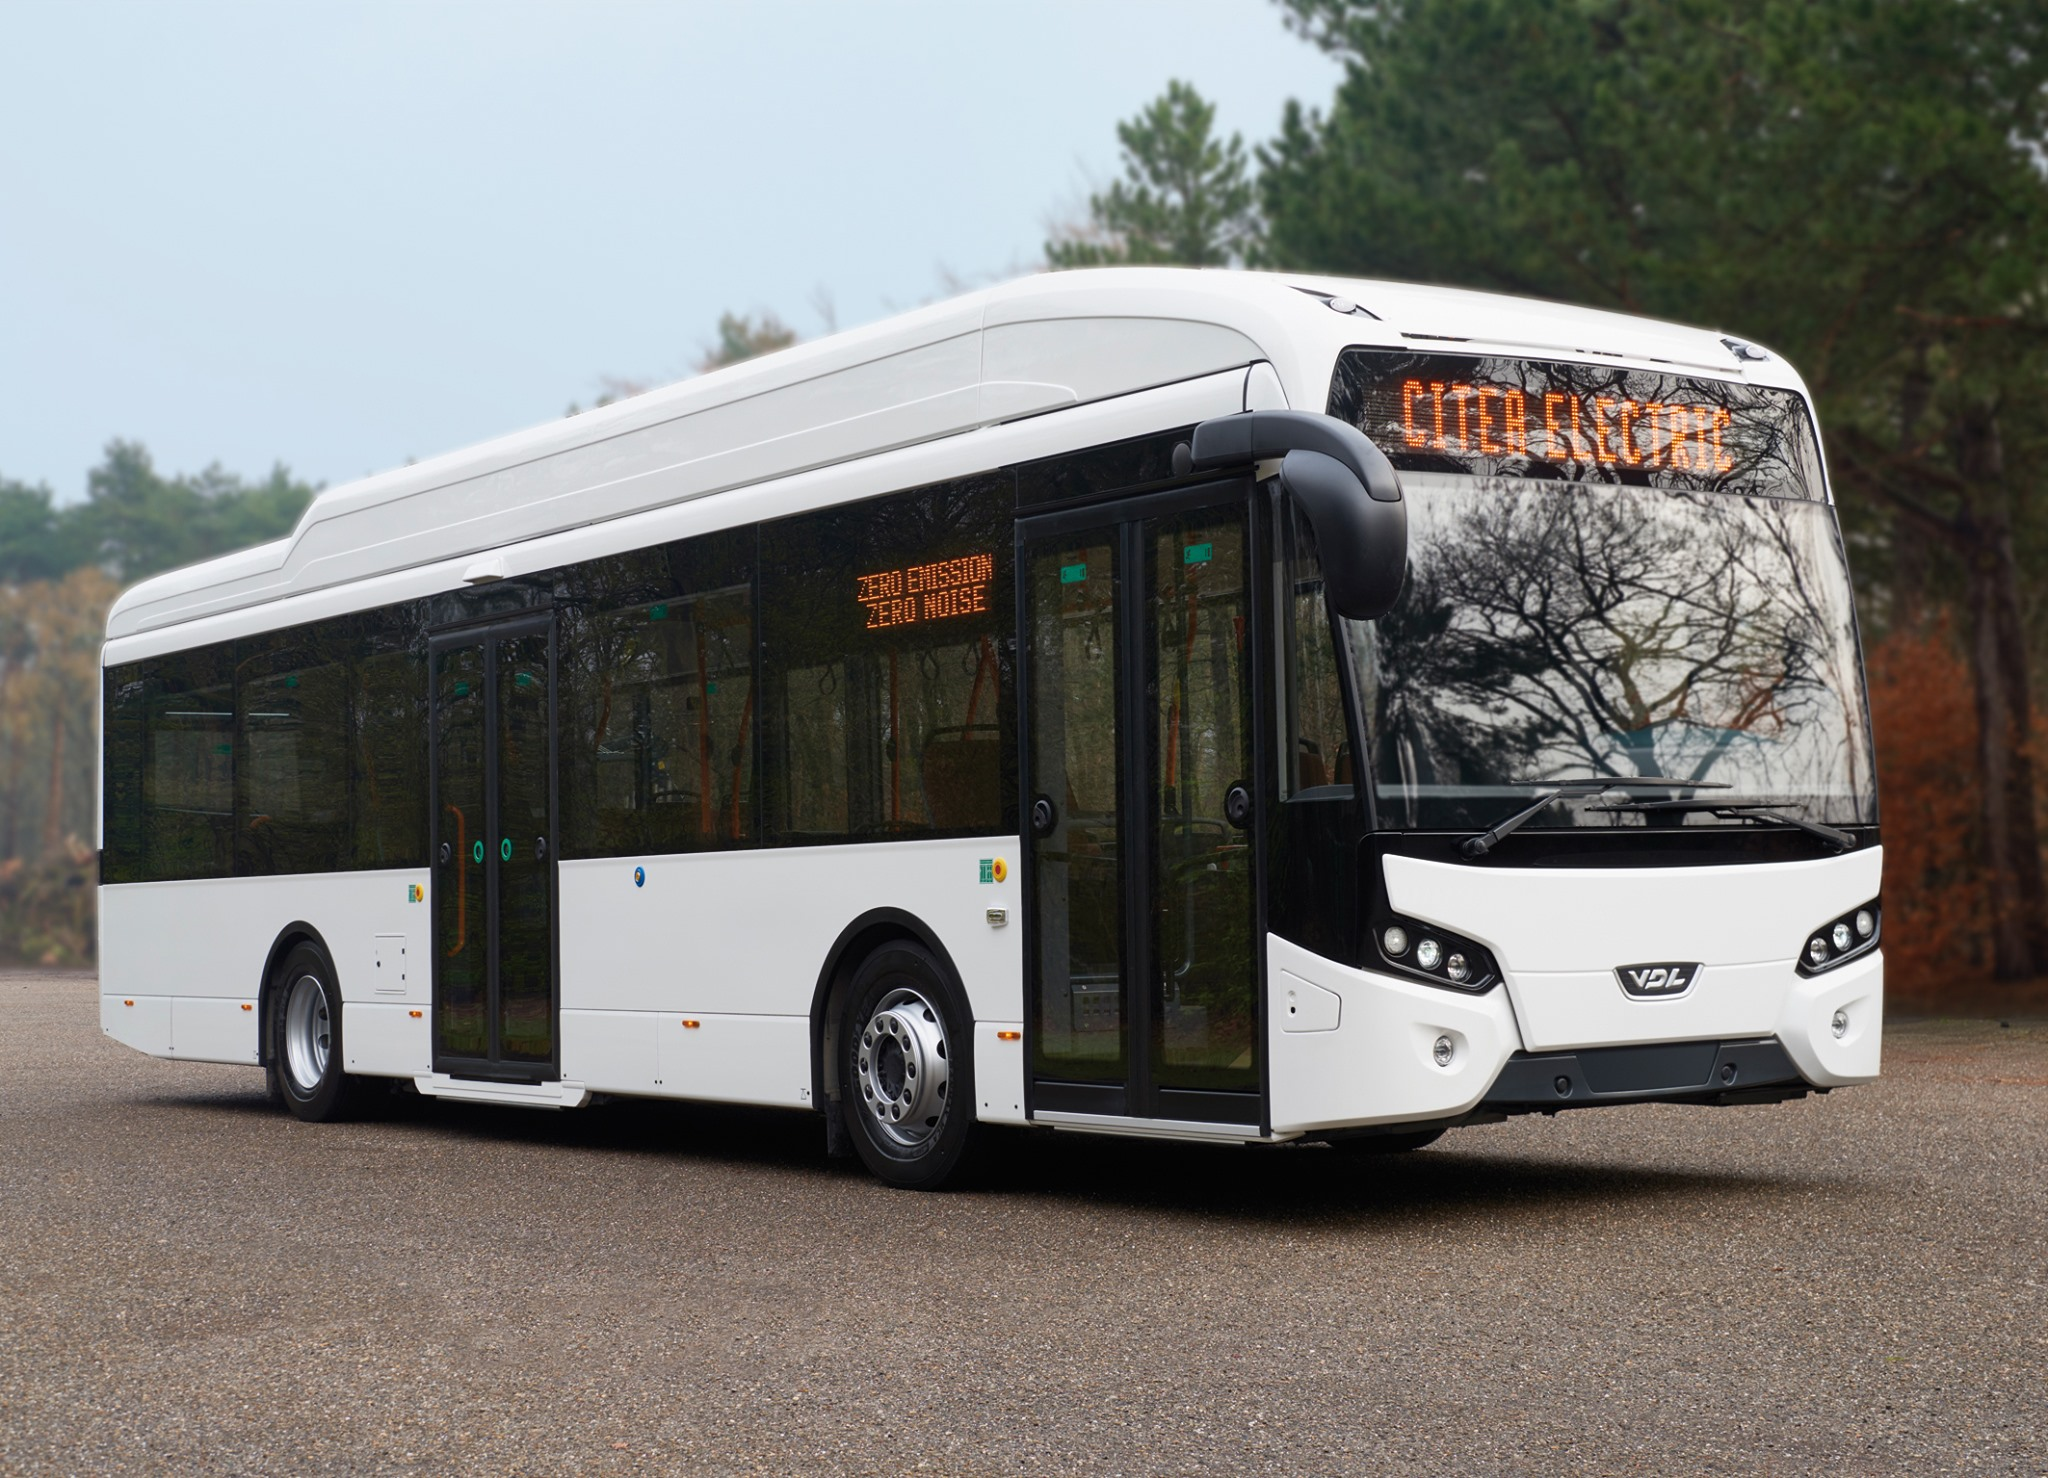 electric bus Norgesbuss vdl oslo